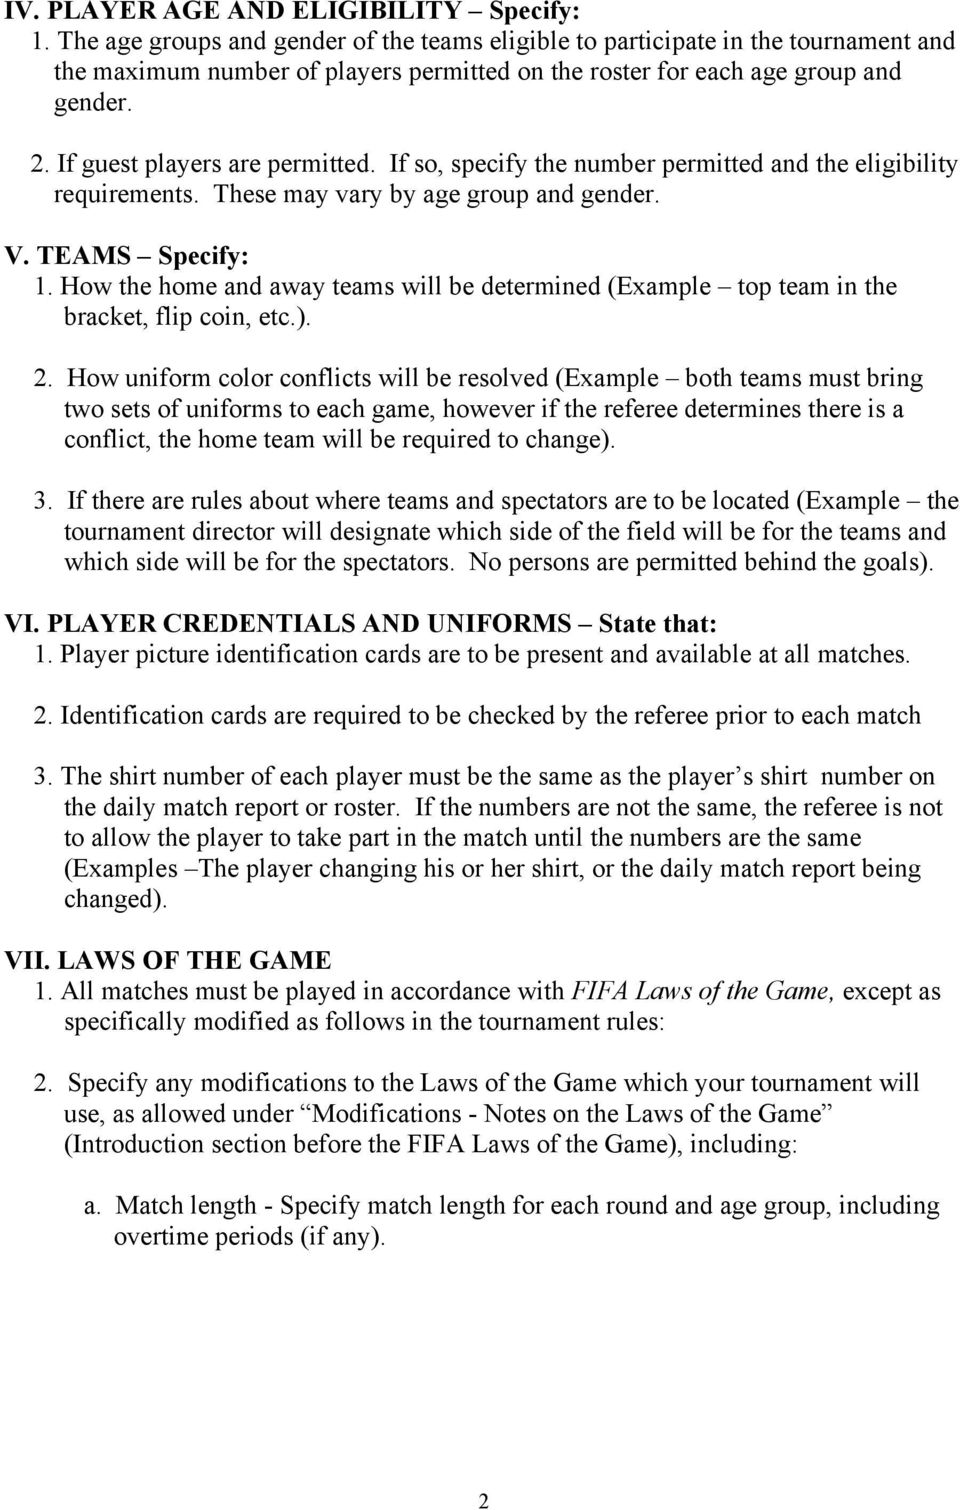 If guest players are permitted. If so, specify the number permitted and the eligibility requirements. These may vary by age group and gender. V. TEAMS Specify: 1.